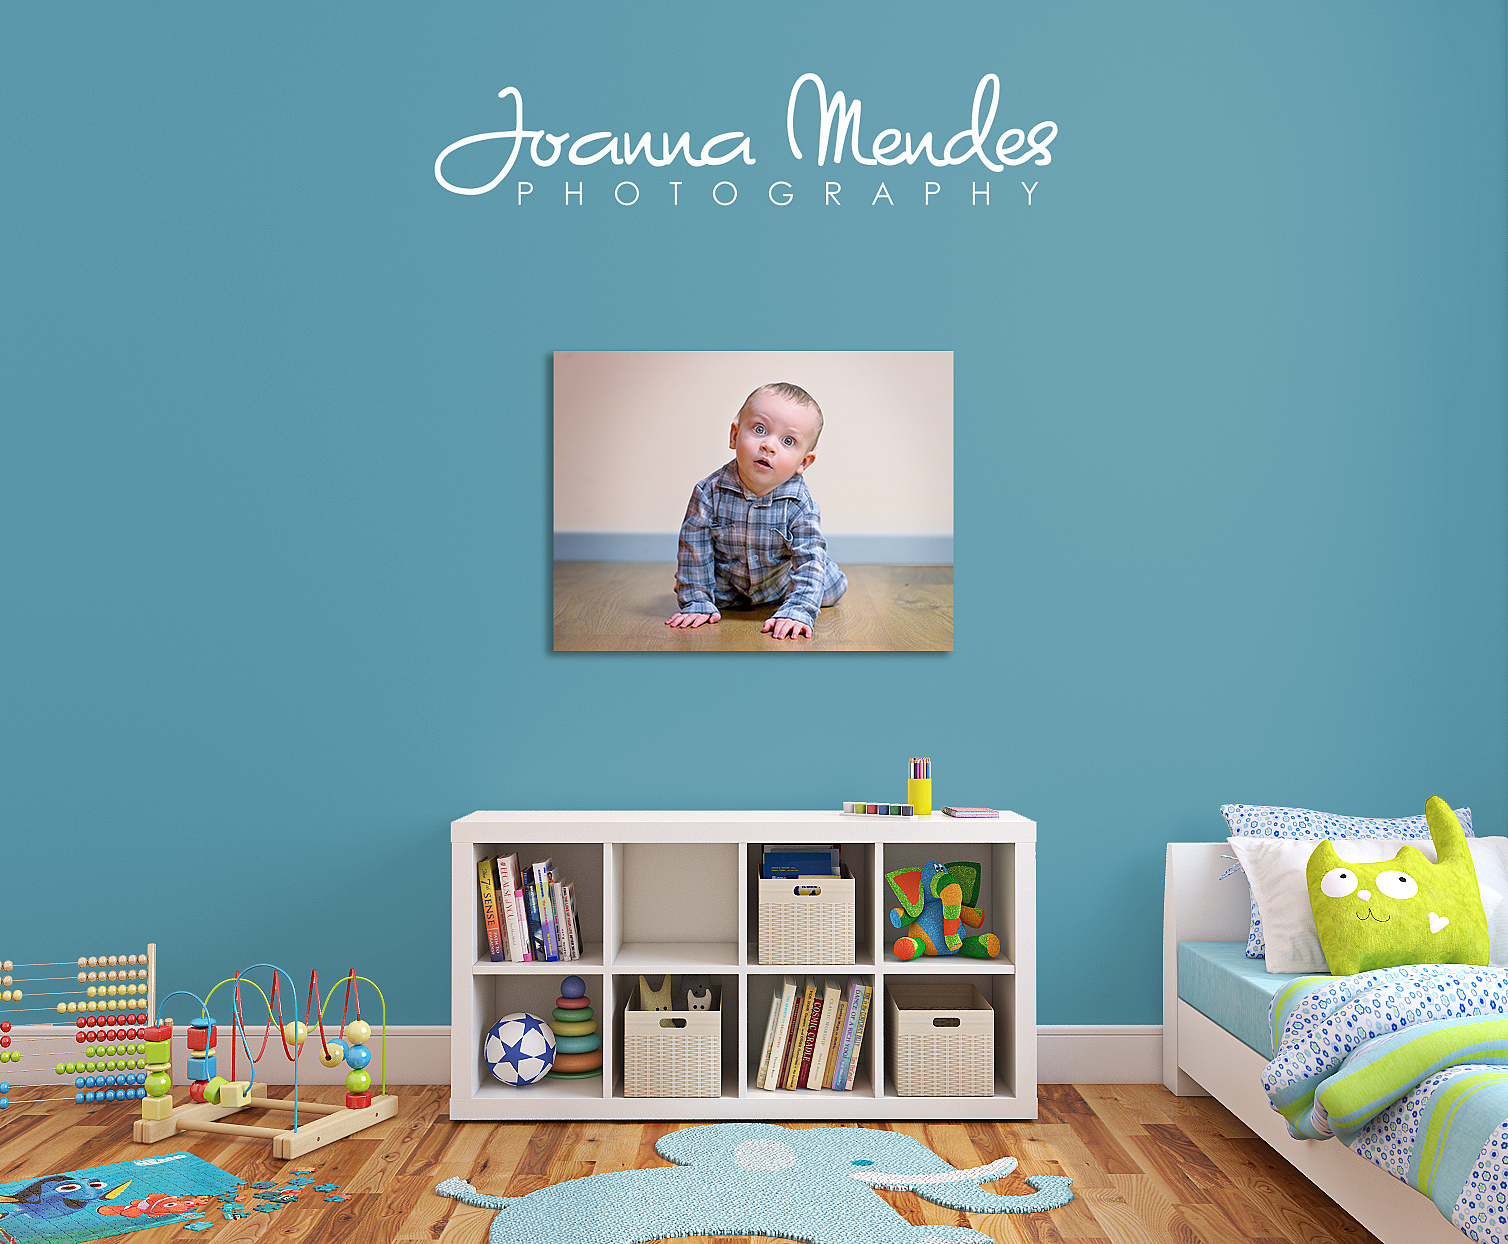 Baby Wall Canvas Display by Joanna Mendes Photography in Launceston Cornwall